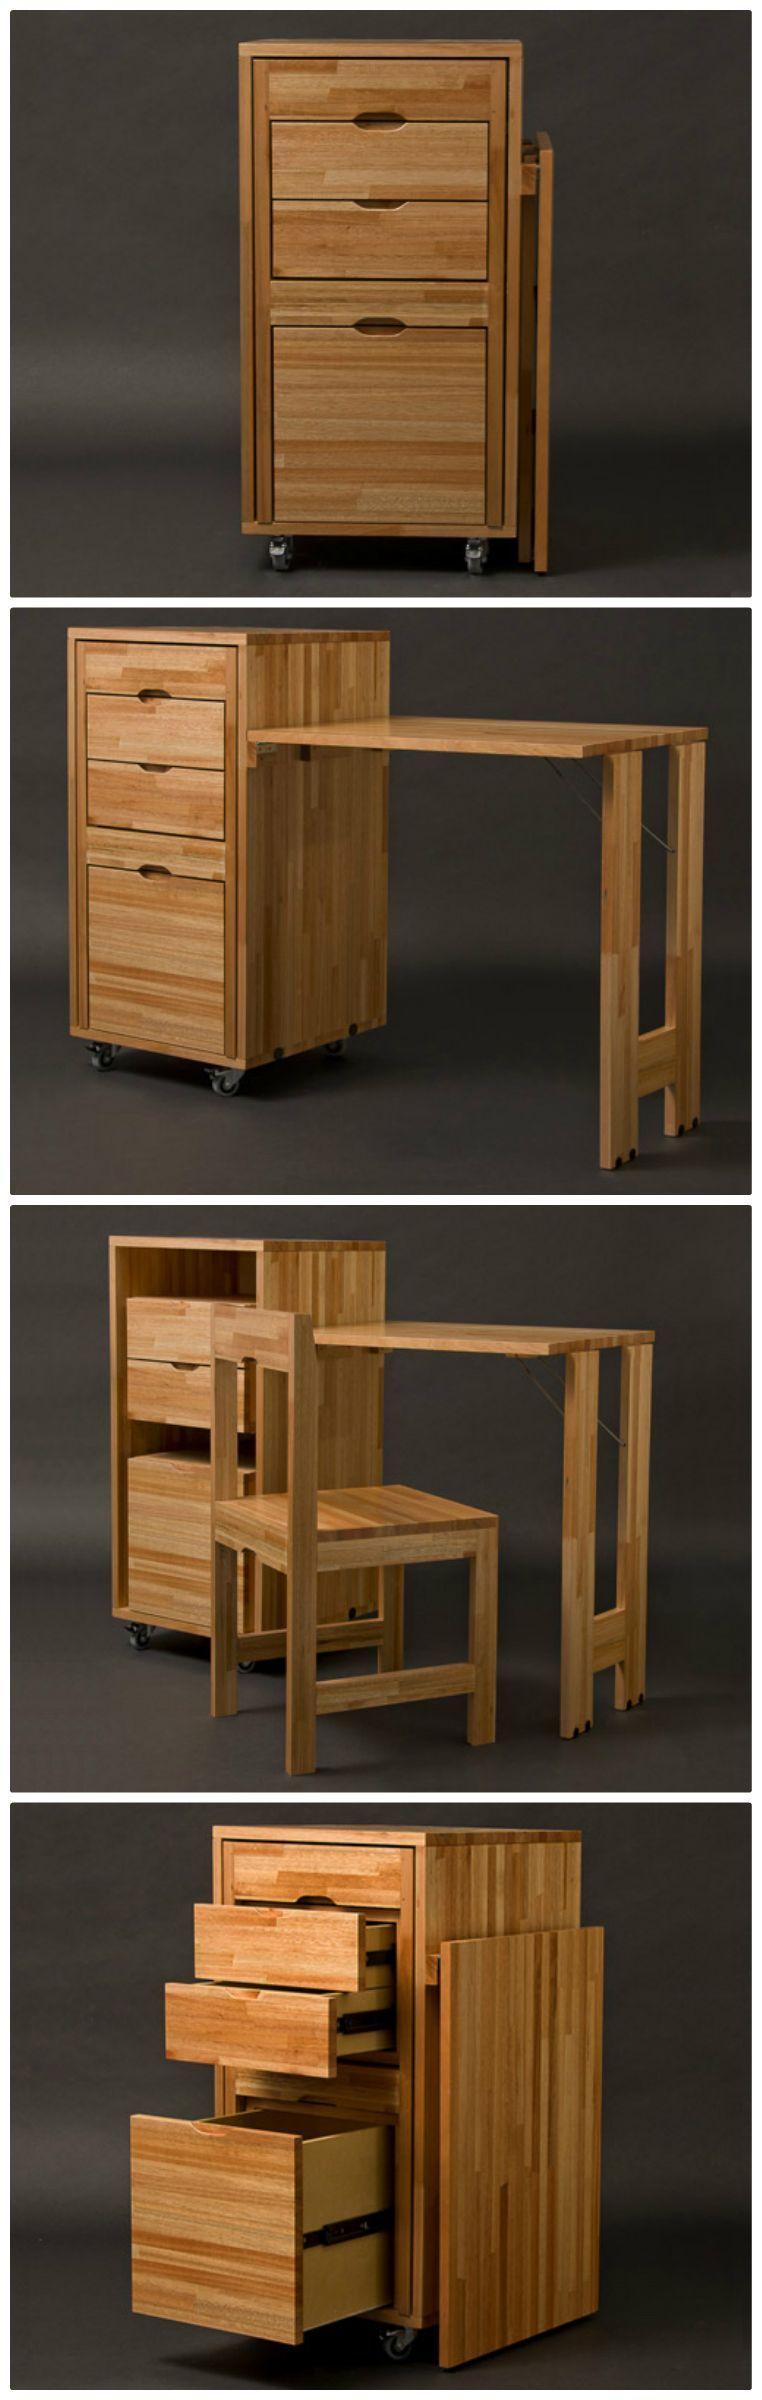 Transforming cabinet with hidden table and chairs from Claudio Sibille #woodworkingprojectschair